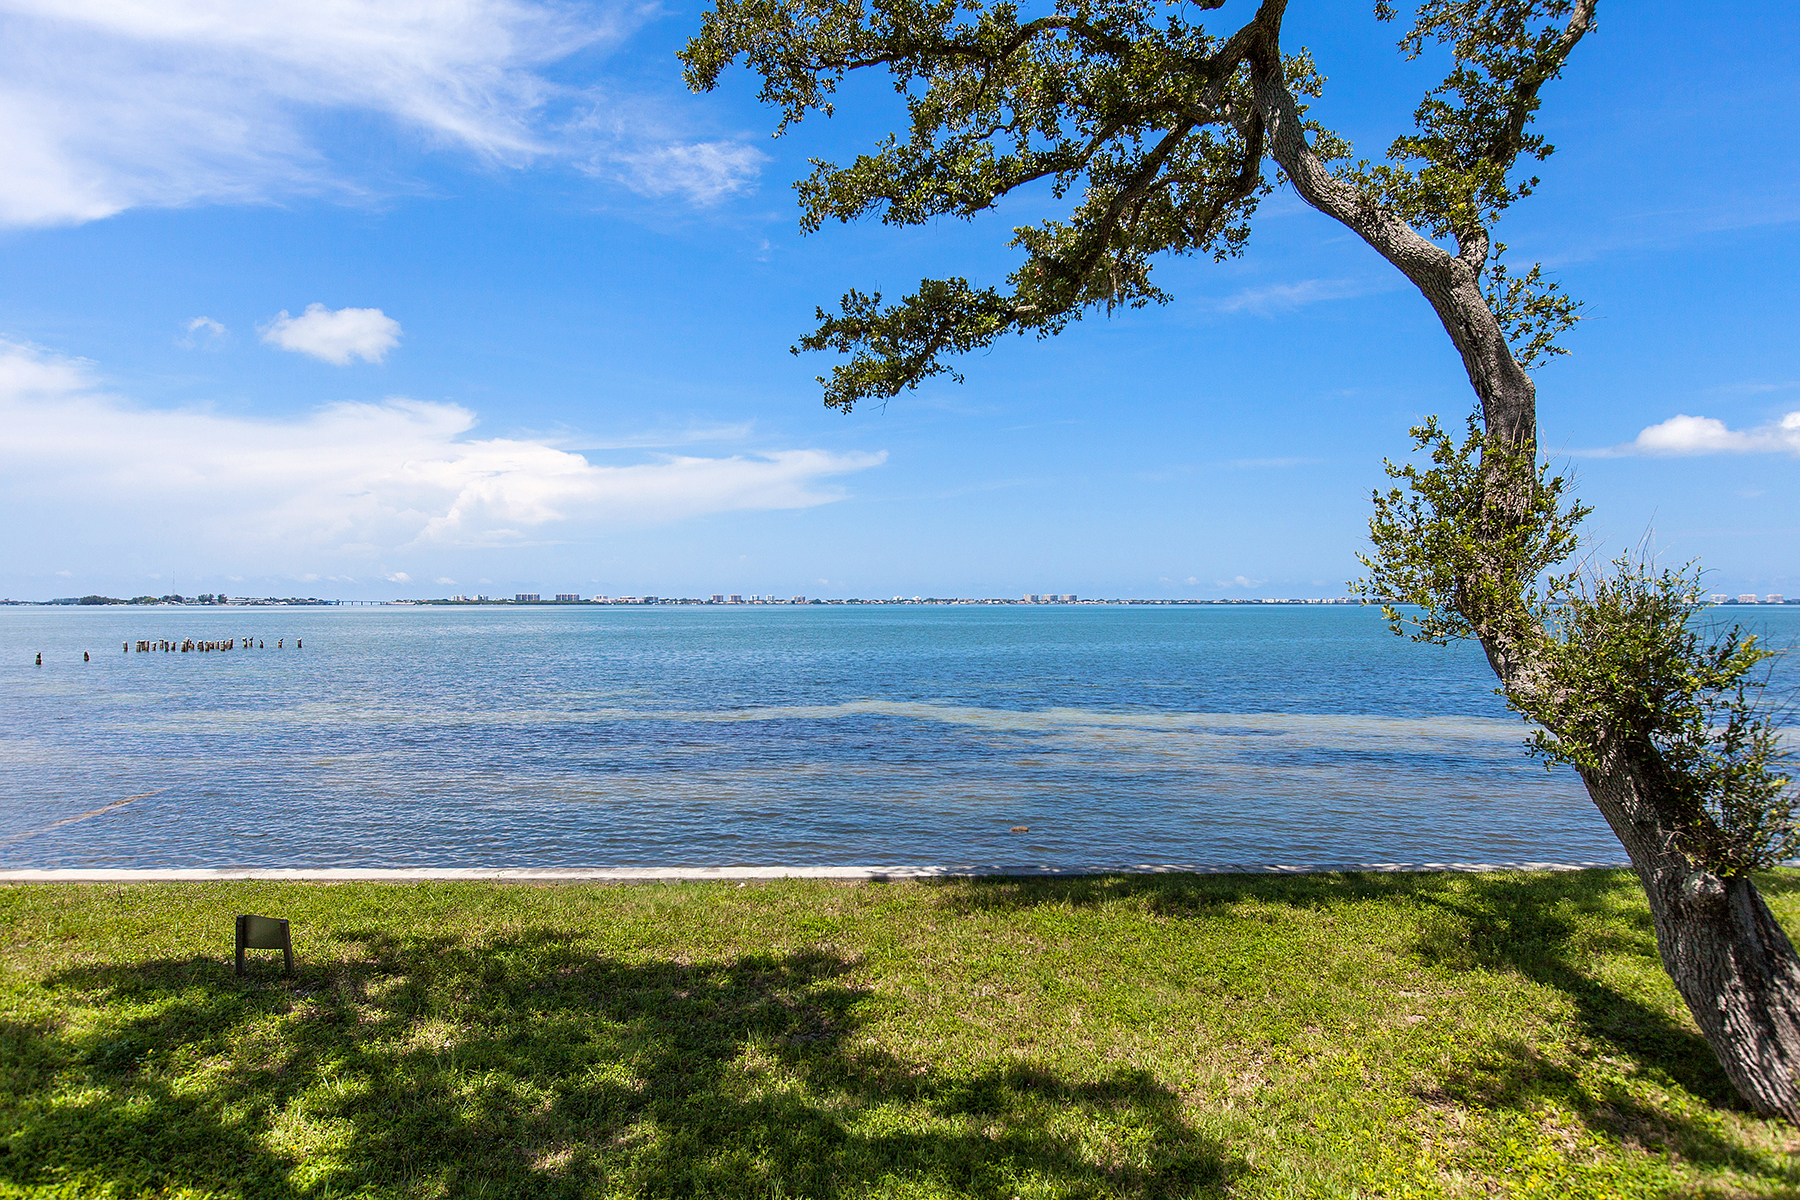 Terreno por un Venta en SARASOTA BAY PARK 840 Indian Beach Dr 0 Sarasota, Florida 34234 Estados Unidos